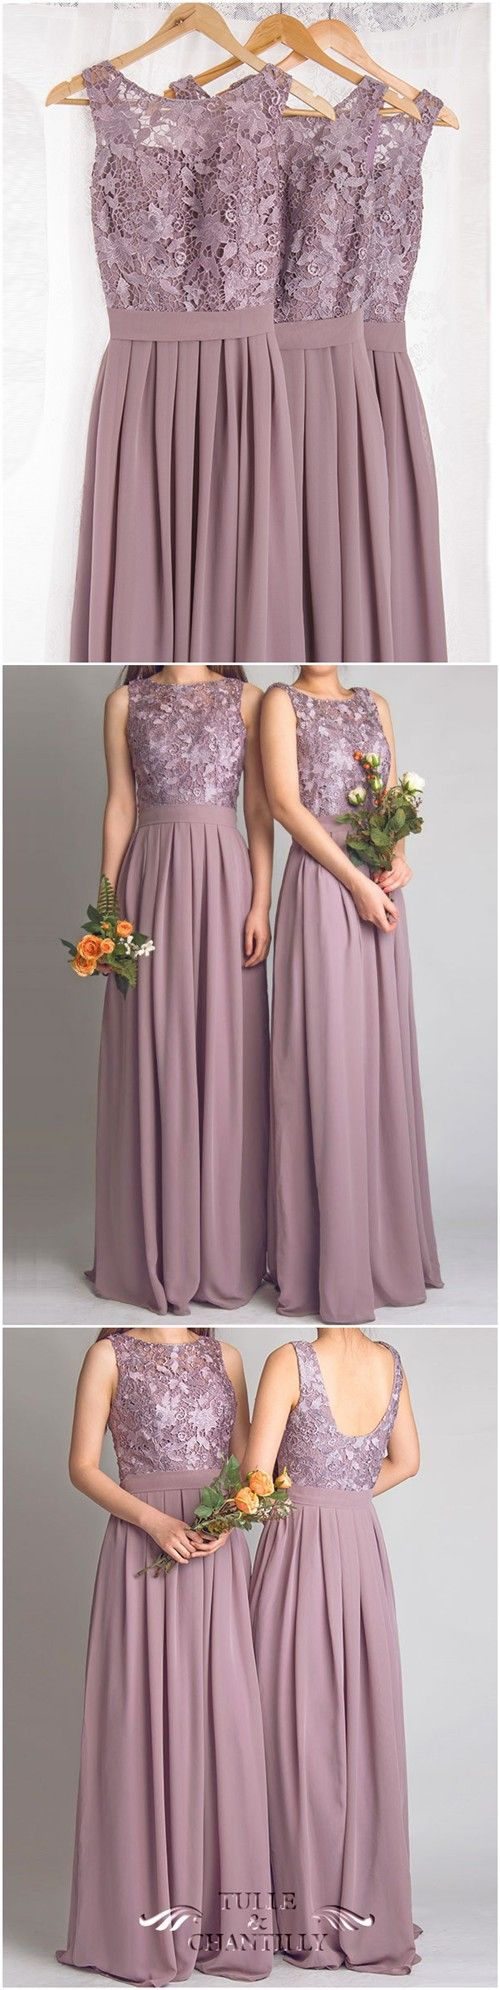 Best 20 vintage bridesmaid dresses ideas on pinterest vintage best 20 vintage bridesmaid dresses ideas on pinterest vintage style bridesmaid dresses pastel bridesmaid dresses and pastel coloured dresses ombrellifo Gallery